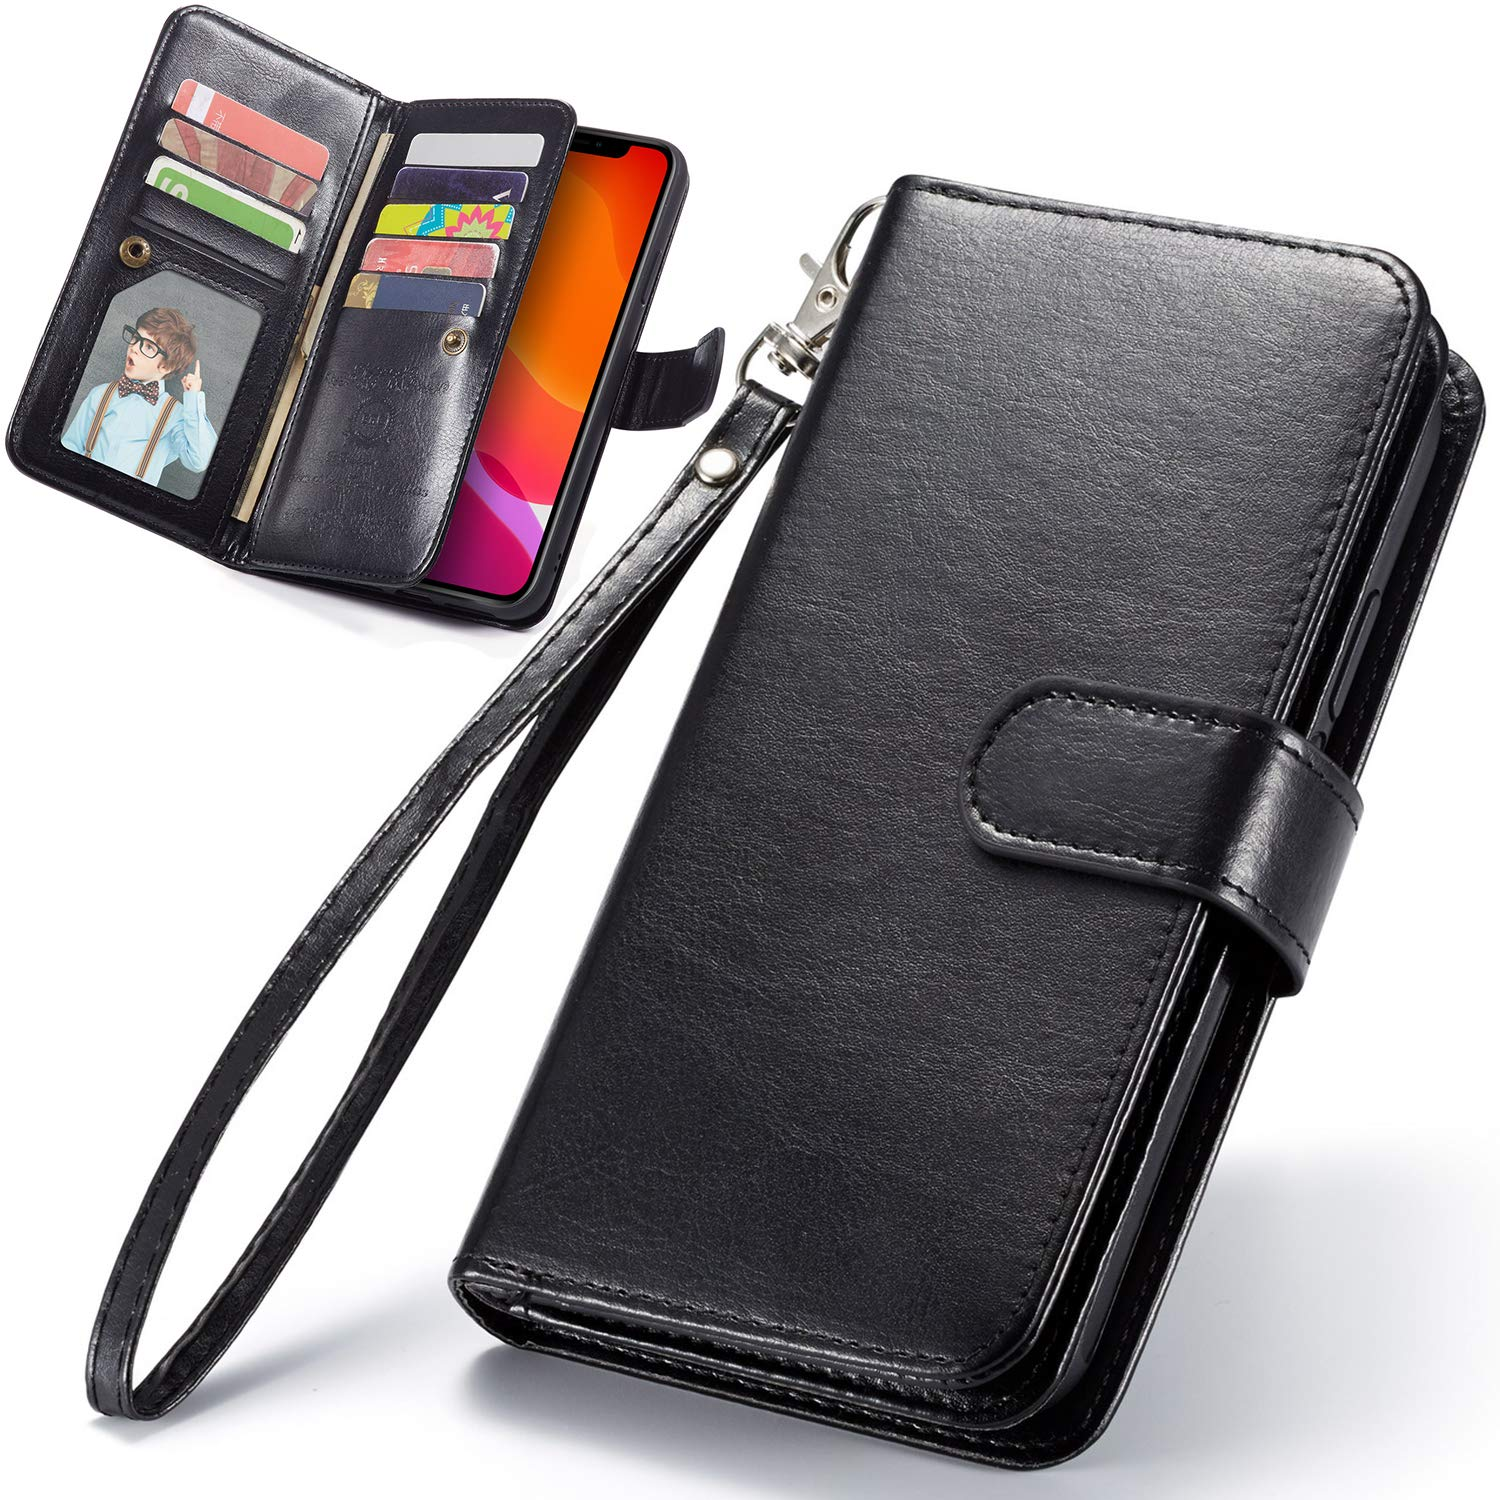 iPhone 11 Pro Case, iPhone 11 Pro Wallet Case, 5.8Inch, XRPow [2 in 1] Magnetic Detachable Wallet Case [PU Leather] Folio Flip [9 Card Slot] [Wrist Strap] Durable Protection Back Cover Black